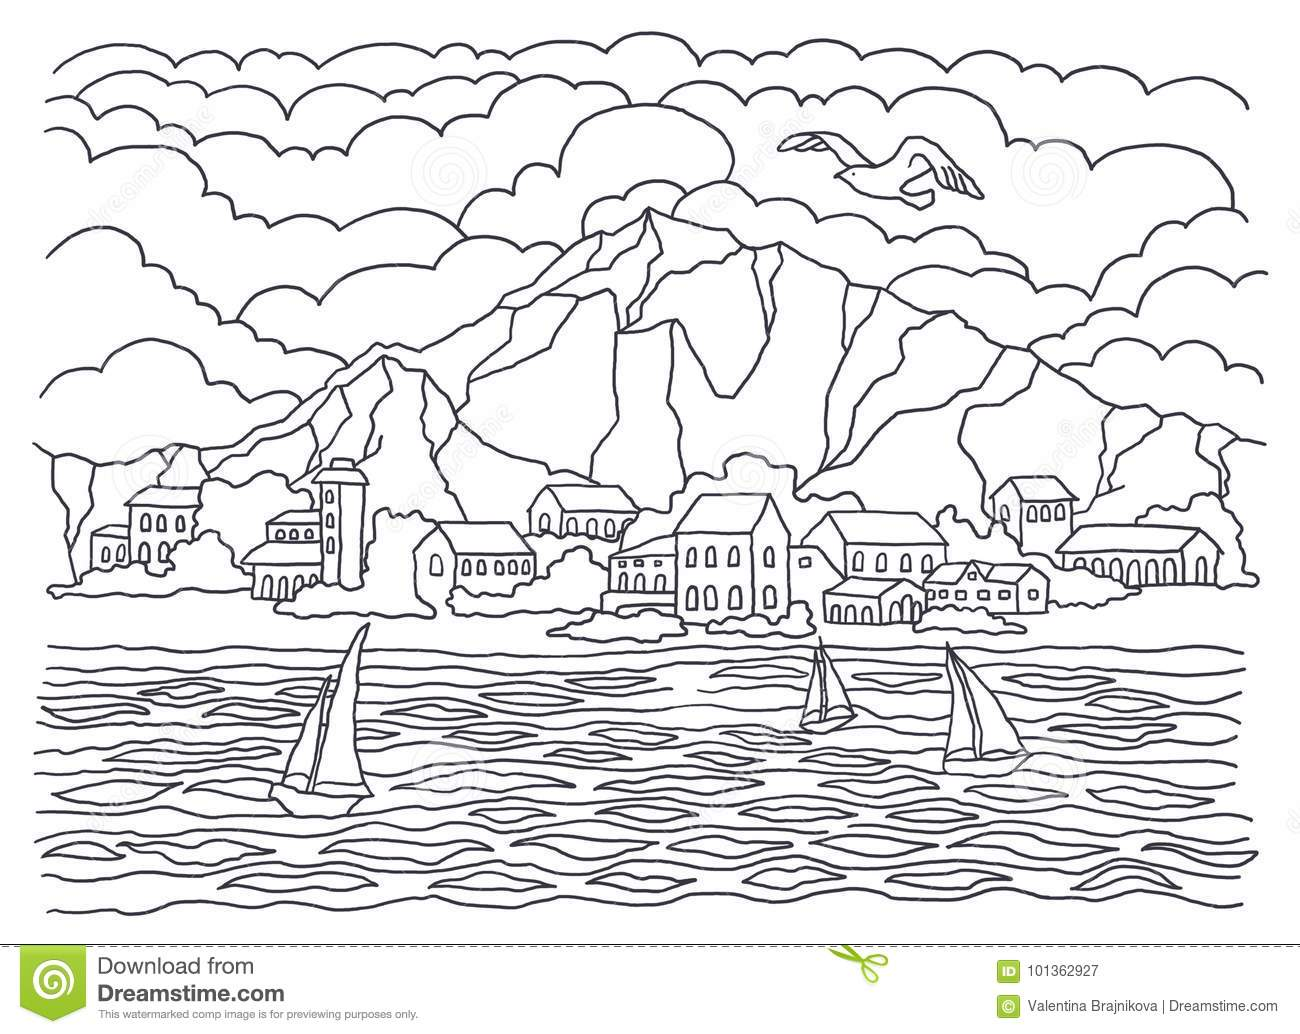 Template For Coloring Sea Coloring Landscape Painting Sea Waves Tranquility Sailboats